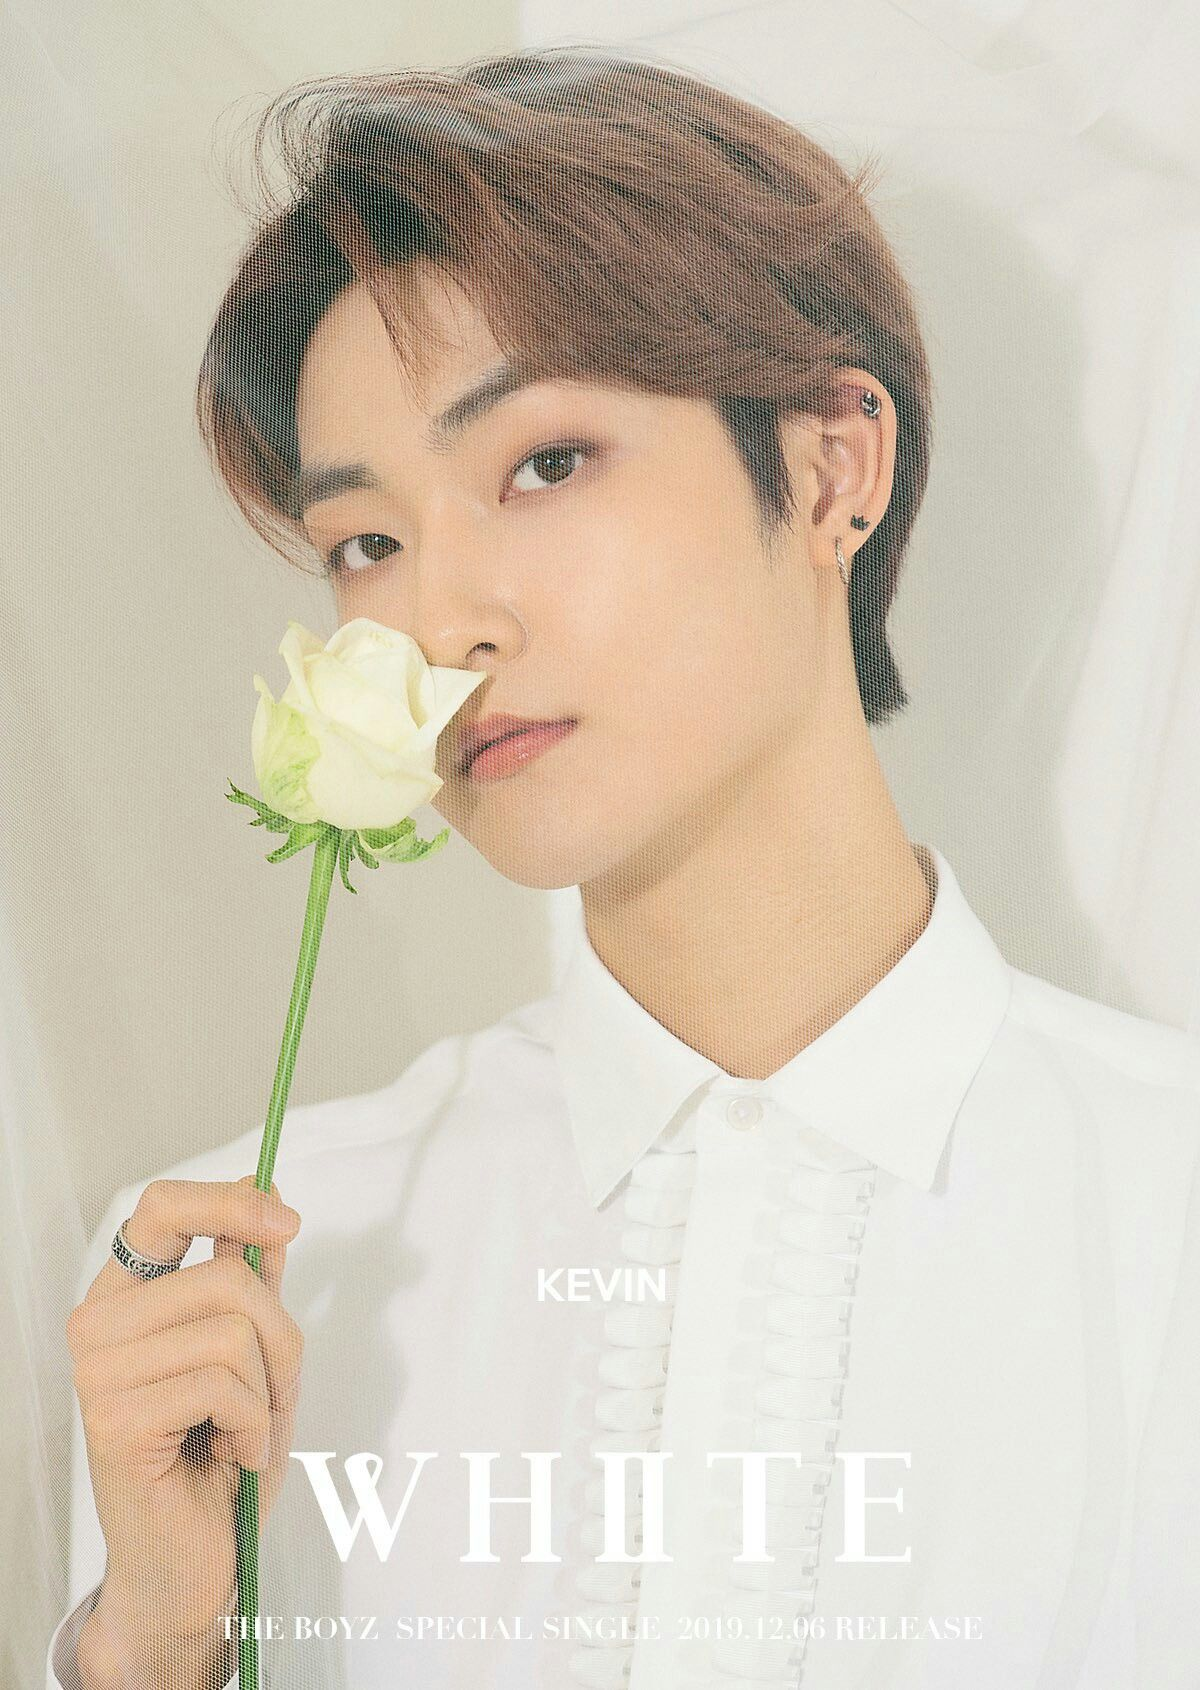 Pin By Fangirl On The Boyz Kevin Kpop Photo